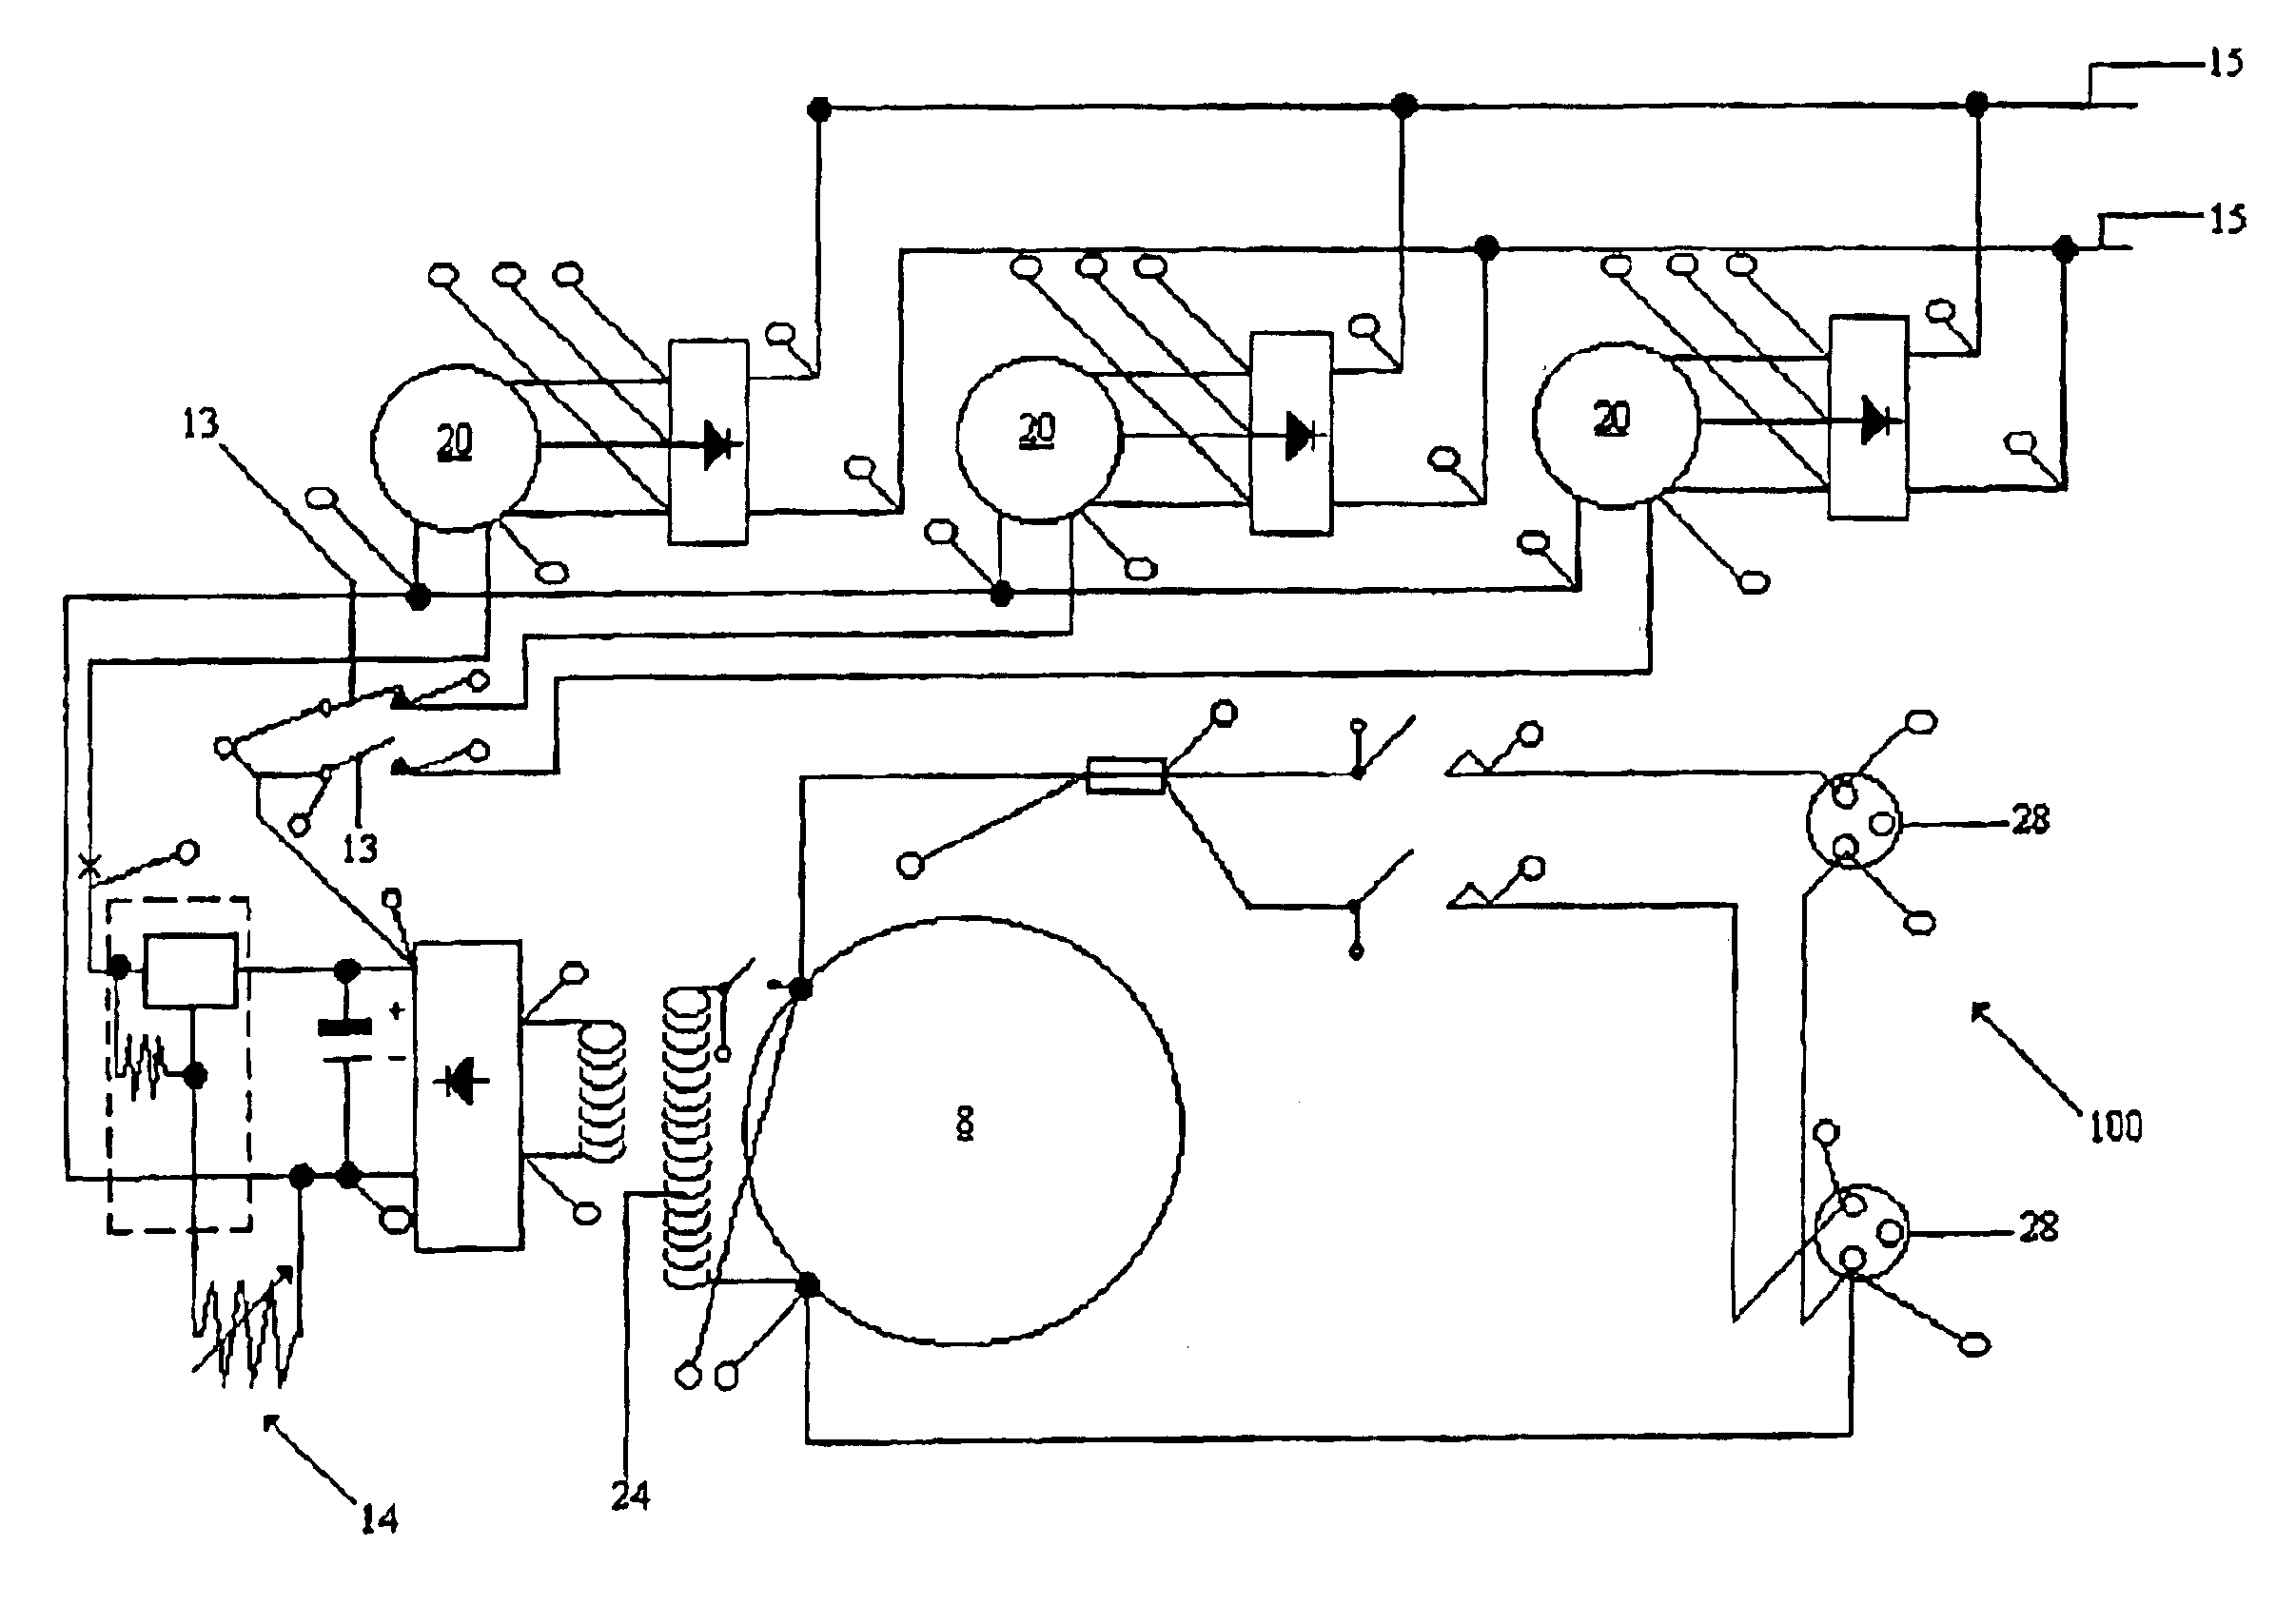 wiring diagram generator leroy somer wiring schematics and diagrams patent us6876096 electrical power generation unit google patents